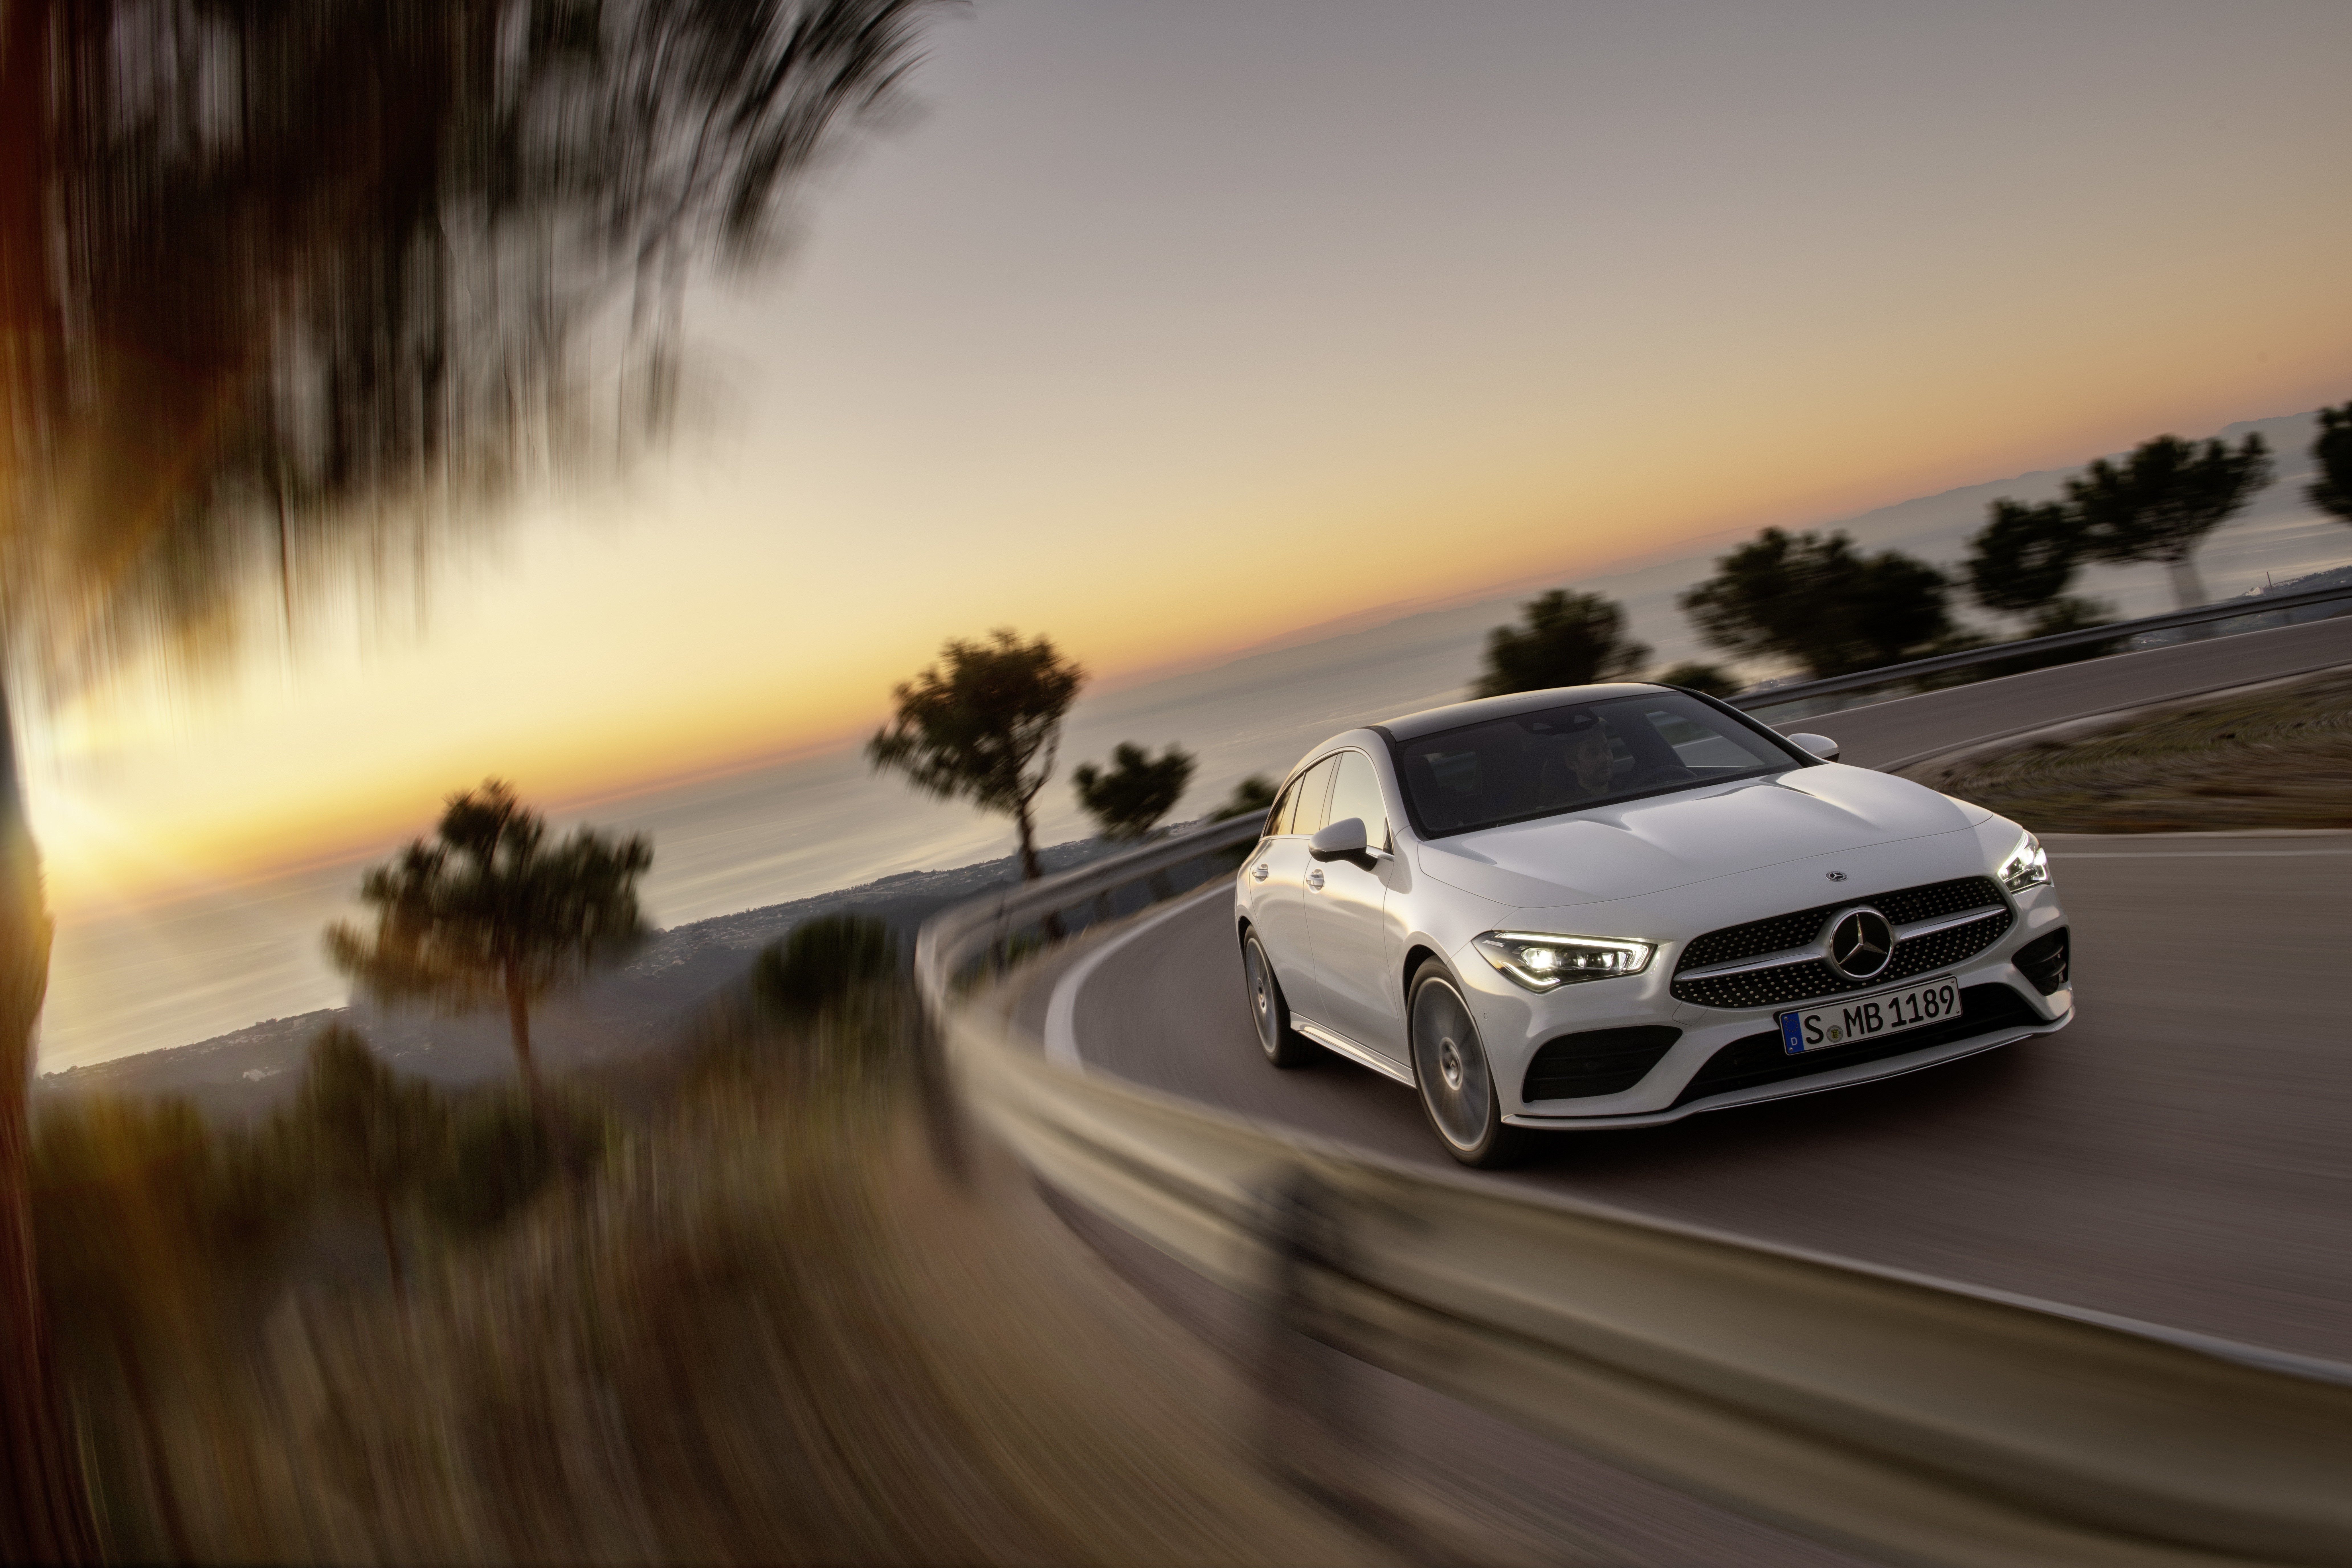 Mercedes-Benz CLA Shooting Brake, X118, 2019, AMG-Line, Exterieur, digitalweiß // Mercedes-Benz CLA Shooting Brake, X118, 2019, AMG-Line, Exterieur, digital white